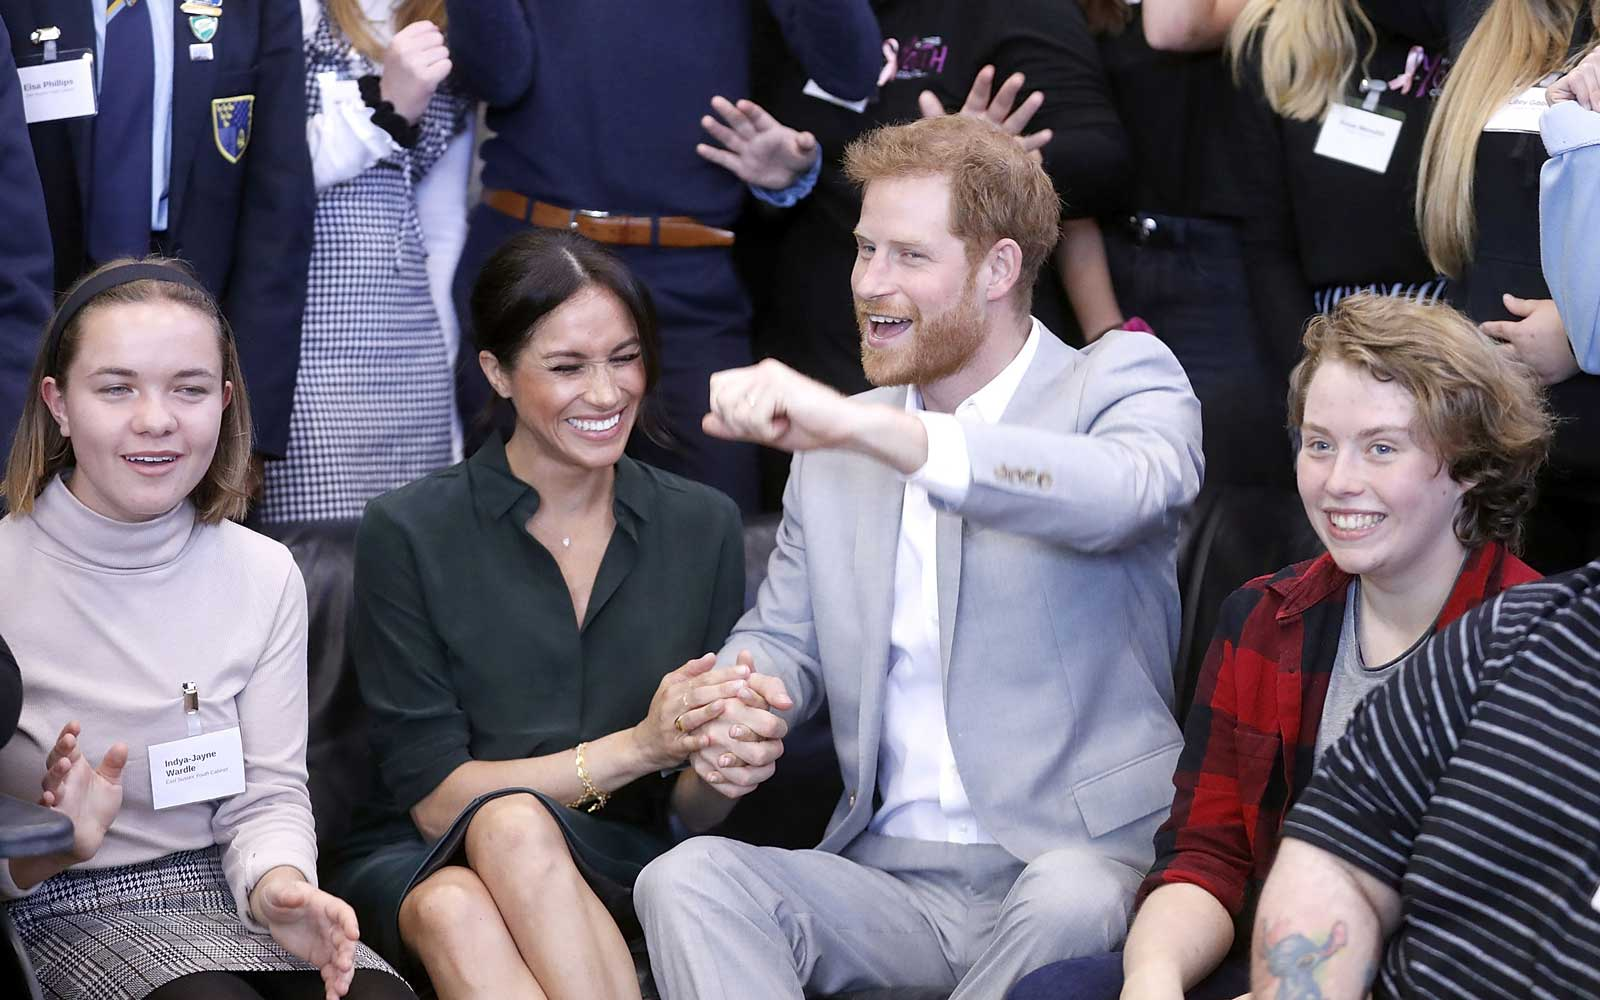 Meghan Markle and Prince Harry Just Showed They're Definitely Still in the Honeymoon Phase